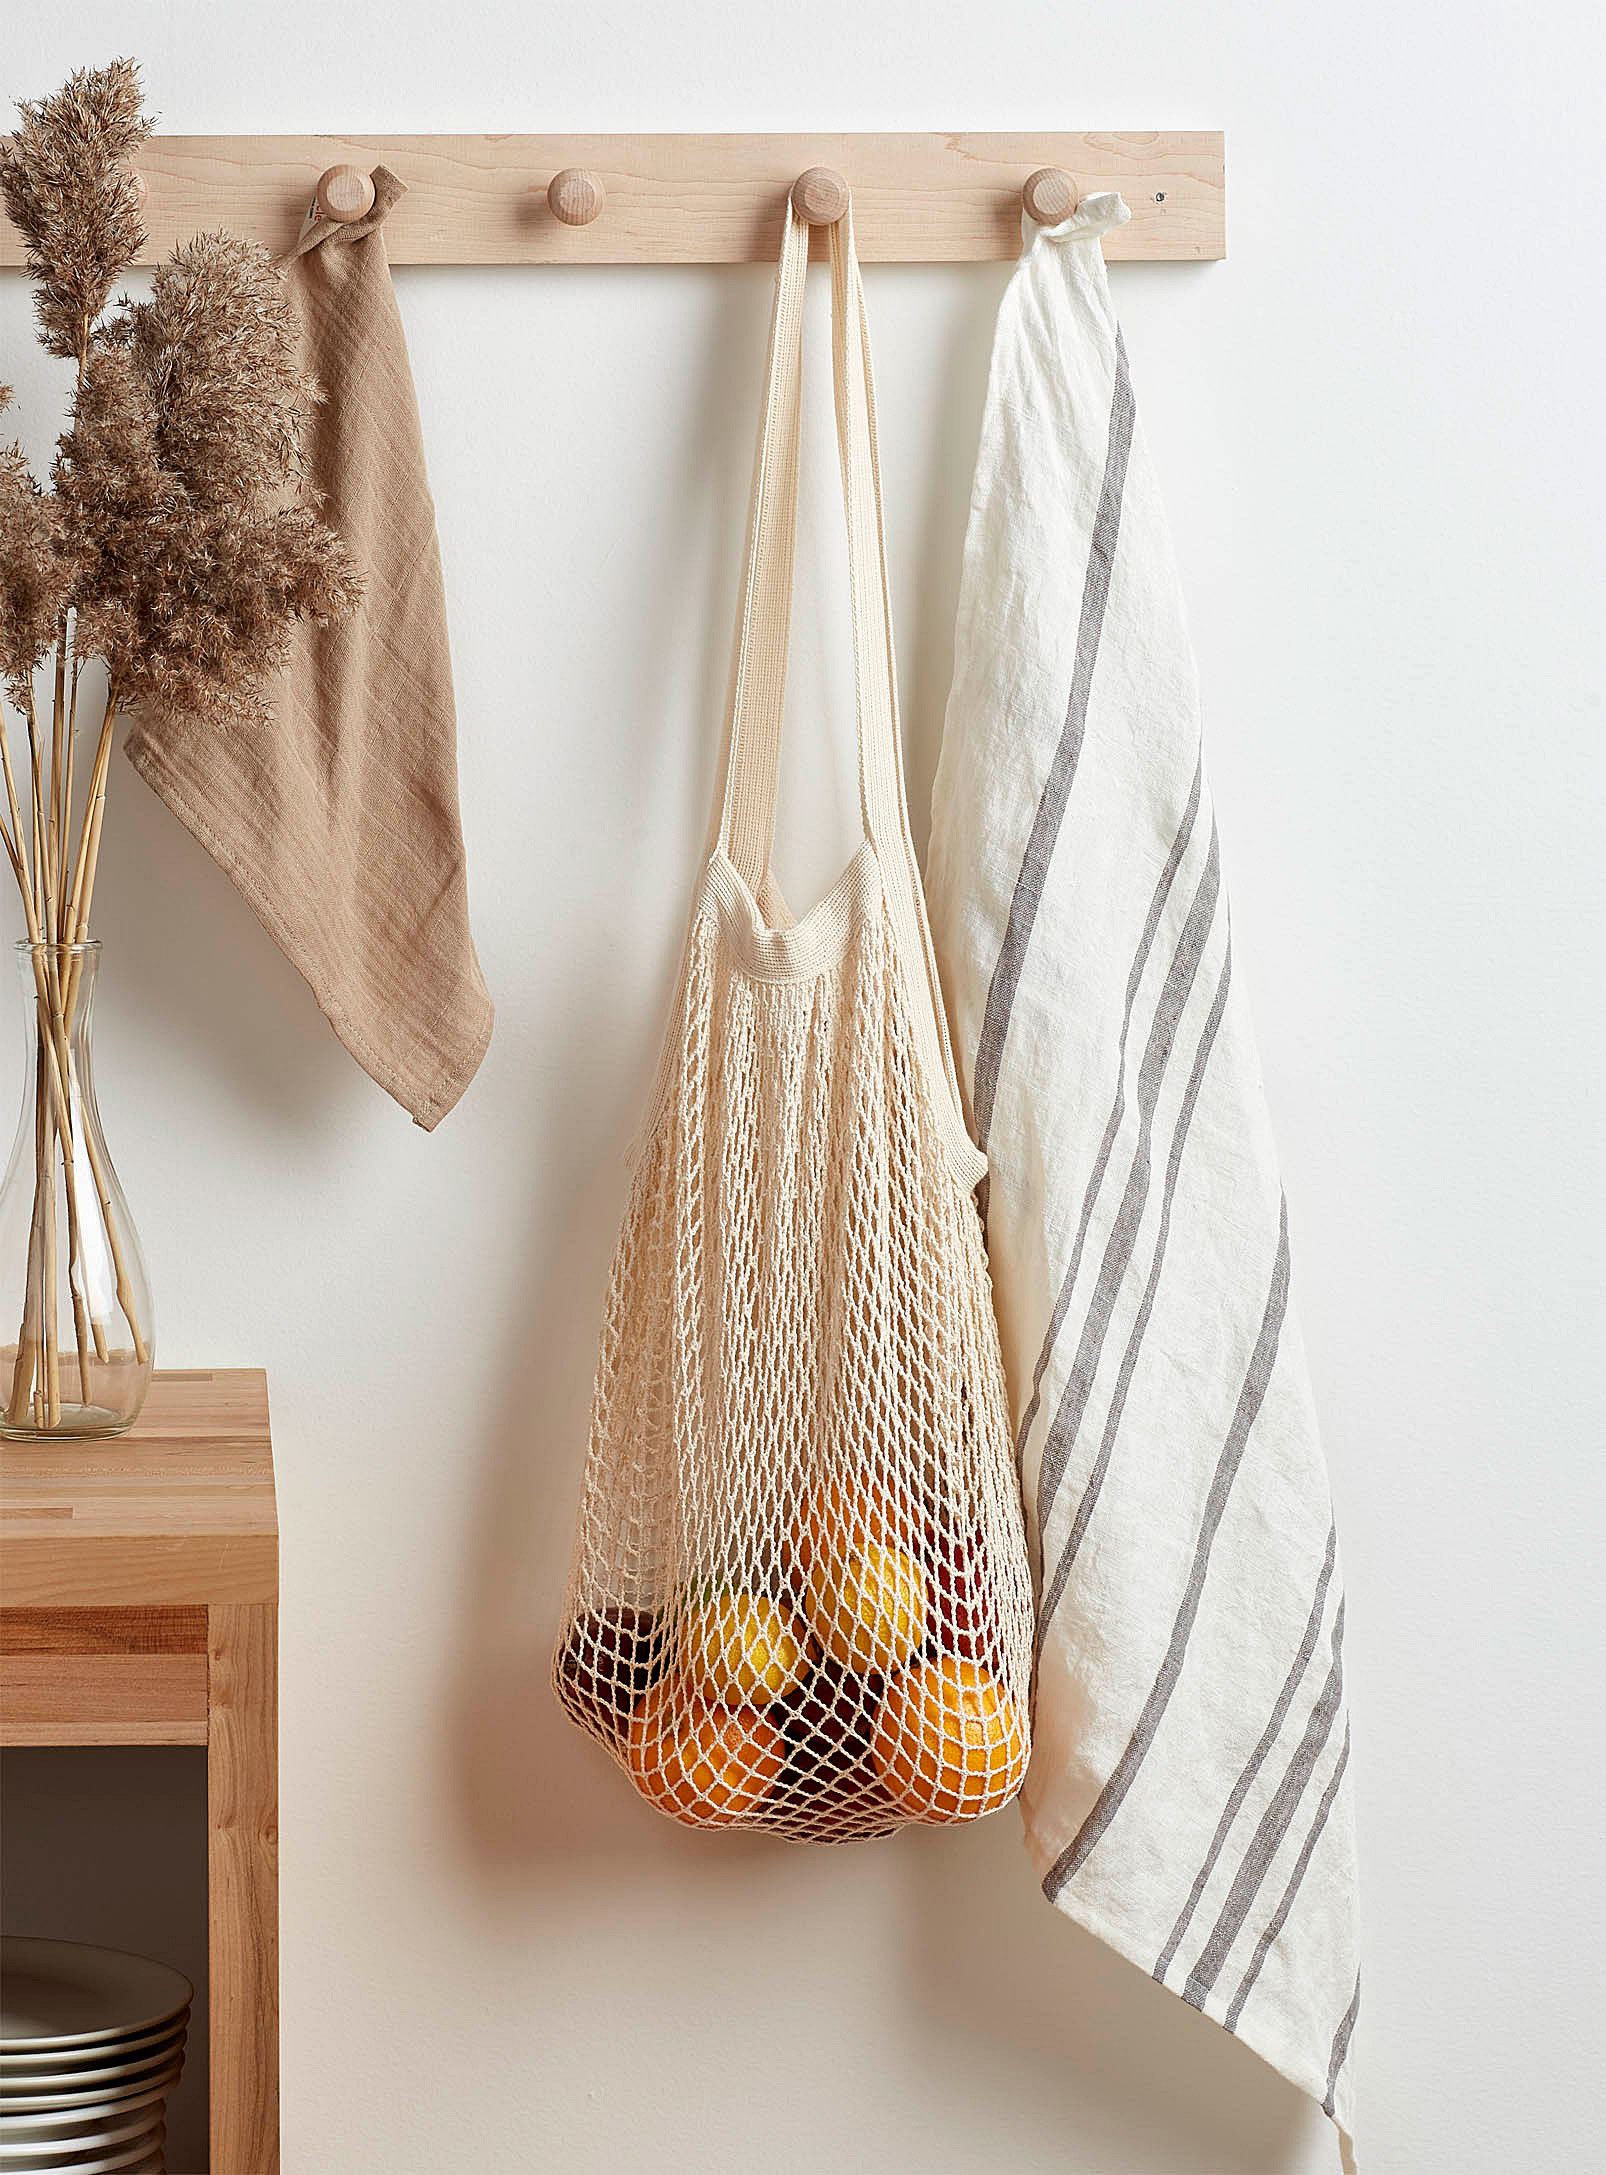 mesh bag hanging with fruit in it